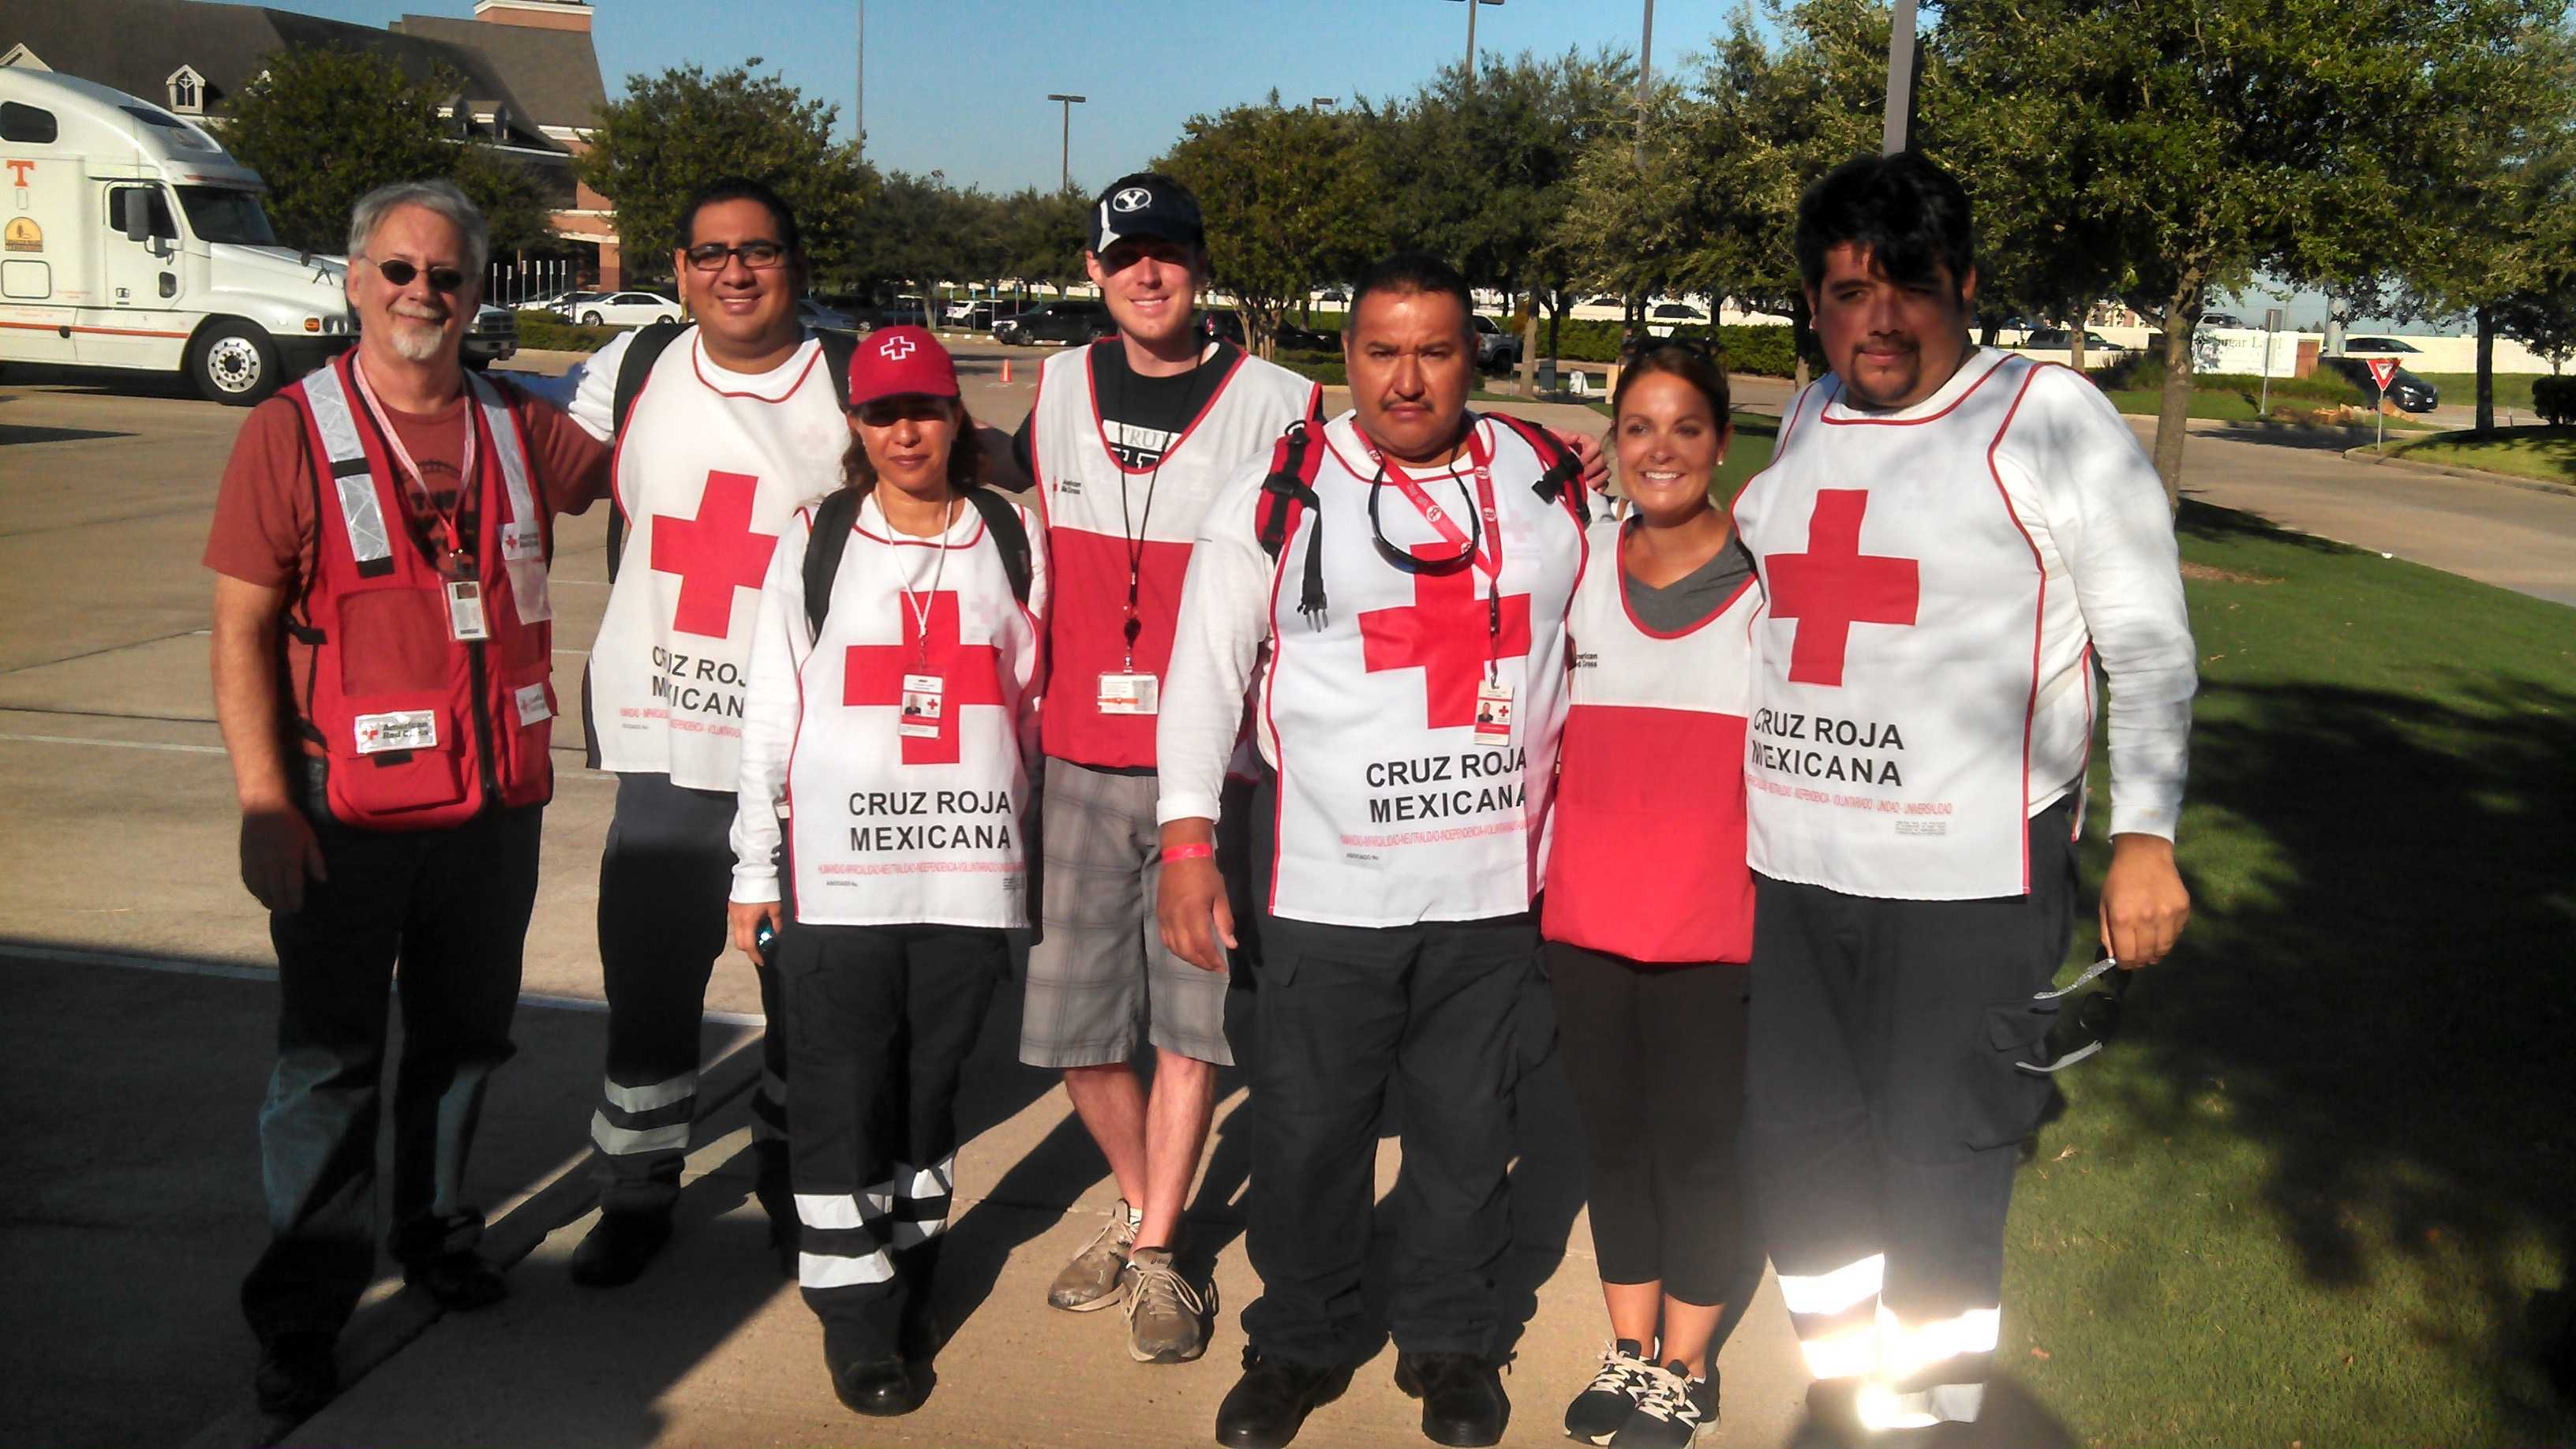 This is the disaster mental health team (DMH) and Ms. Balacco working as partners with the Mexican Red Cross.